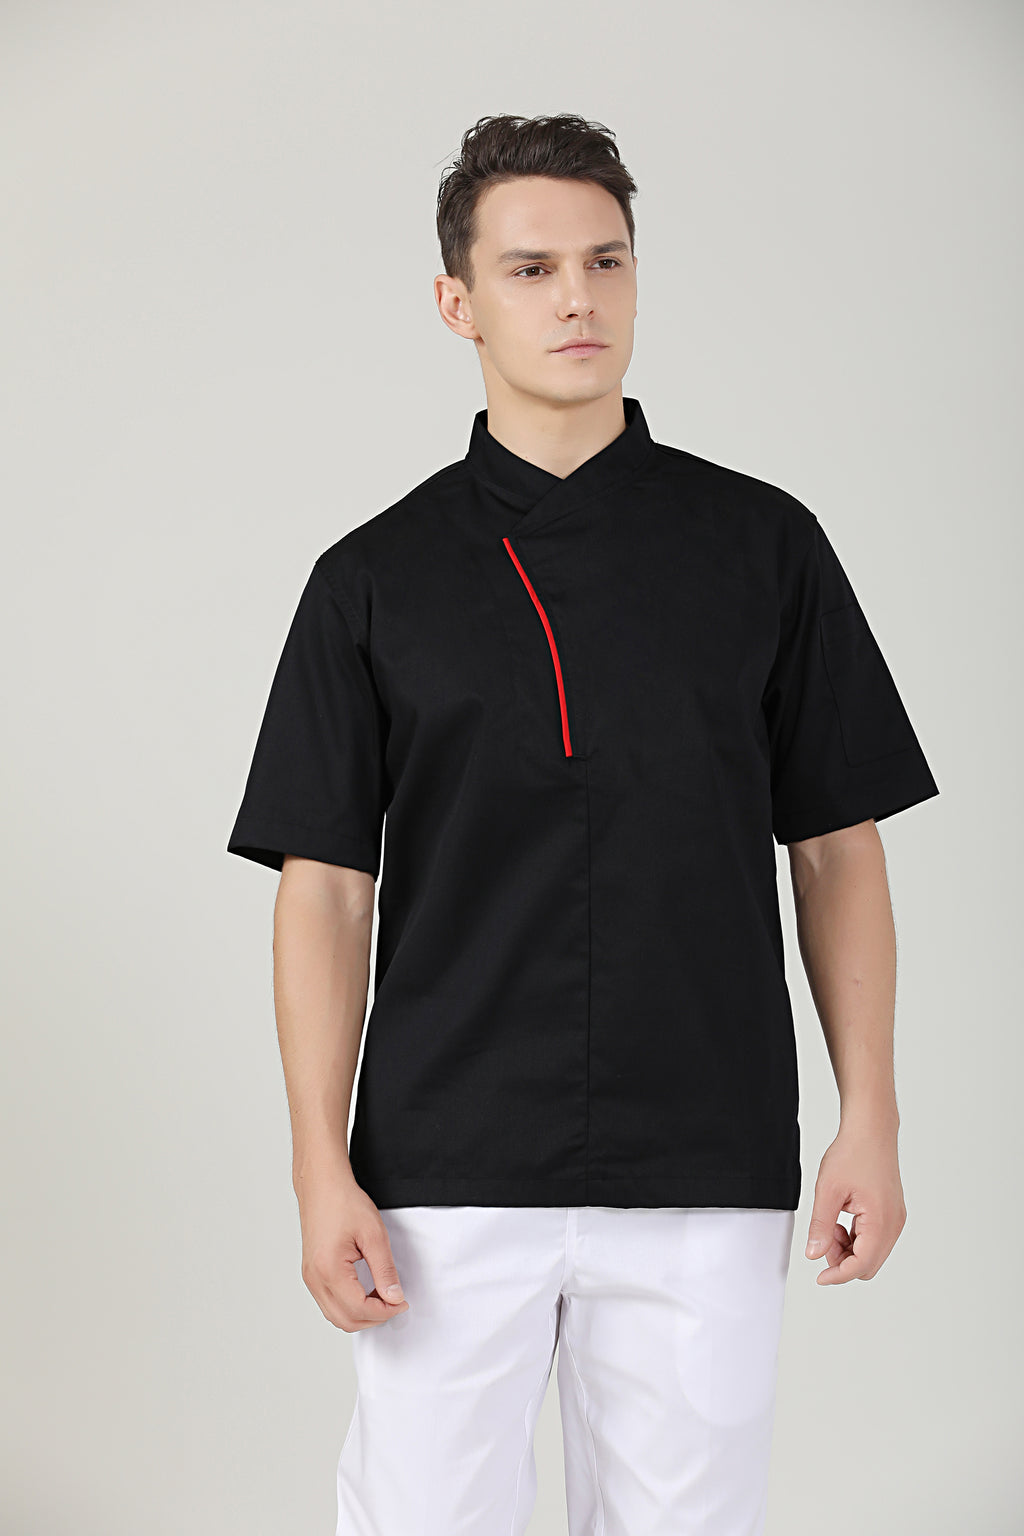 Parsley Black Chef Jacket - Green Chef Wear